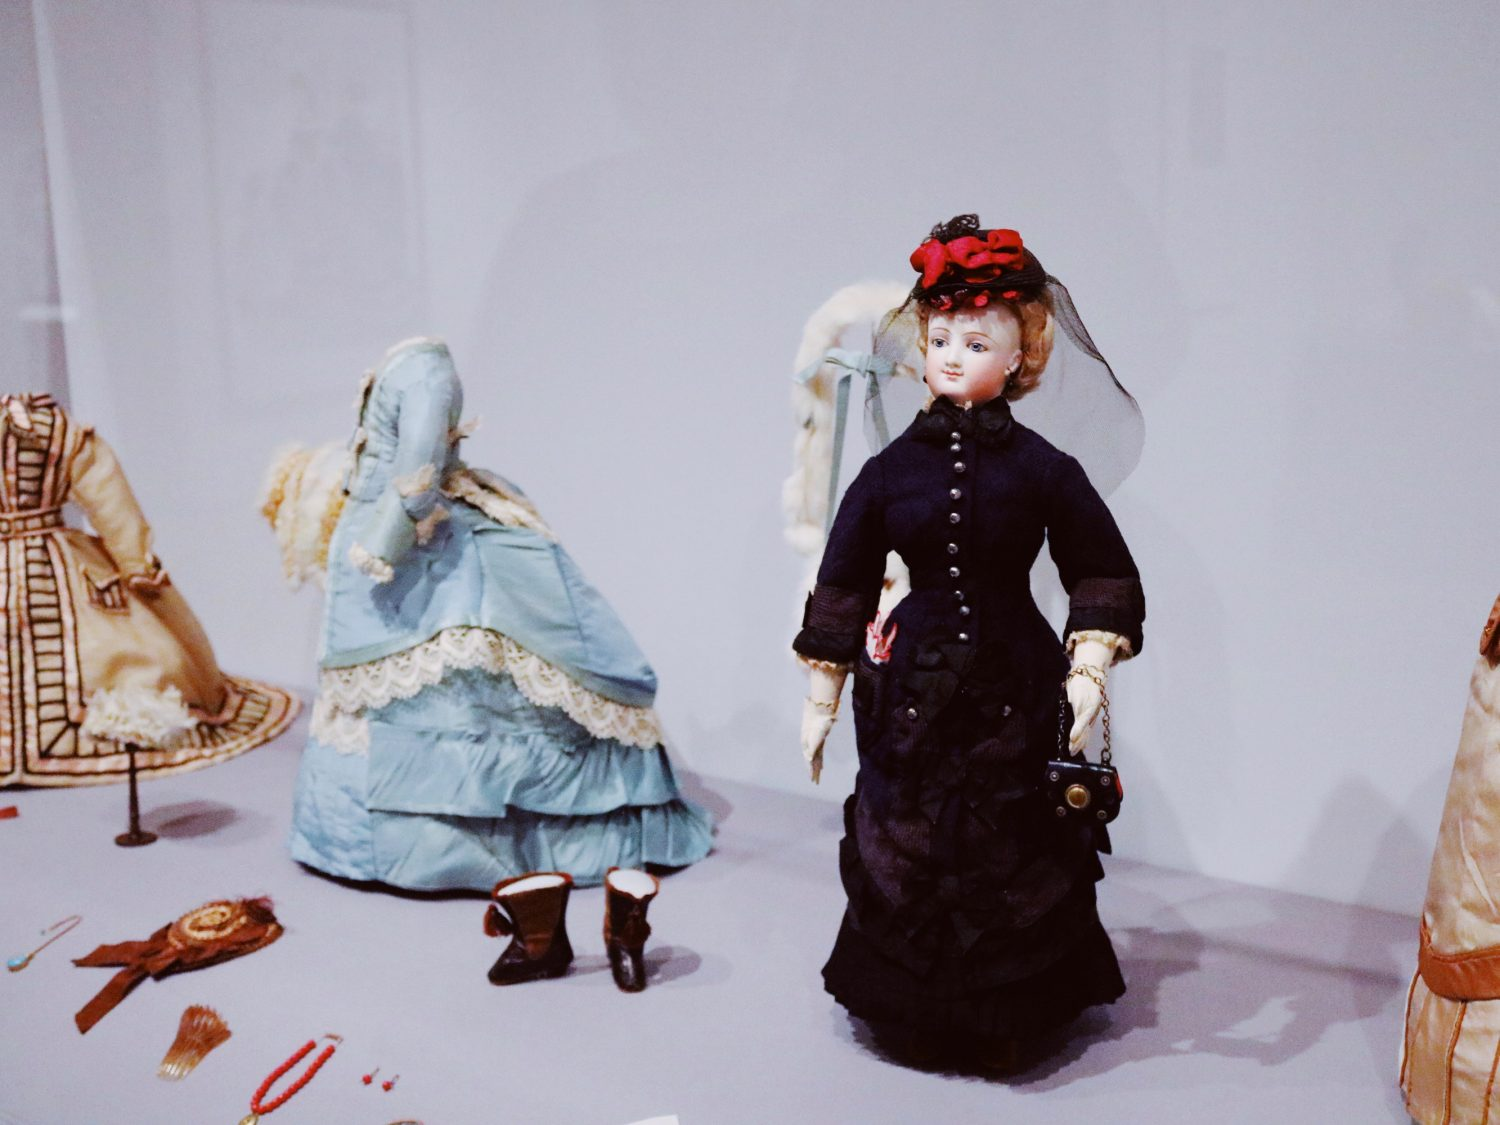 Little Ladies: Victorian Fashion Dolls and the Feminine Ideal exhibit